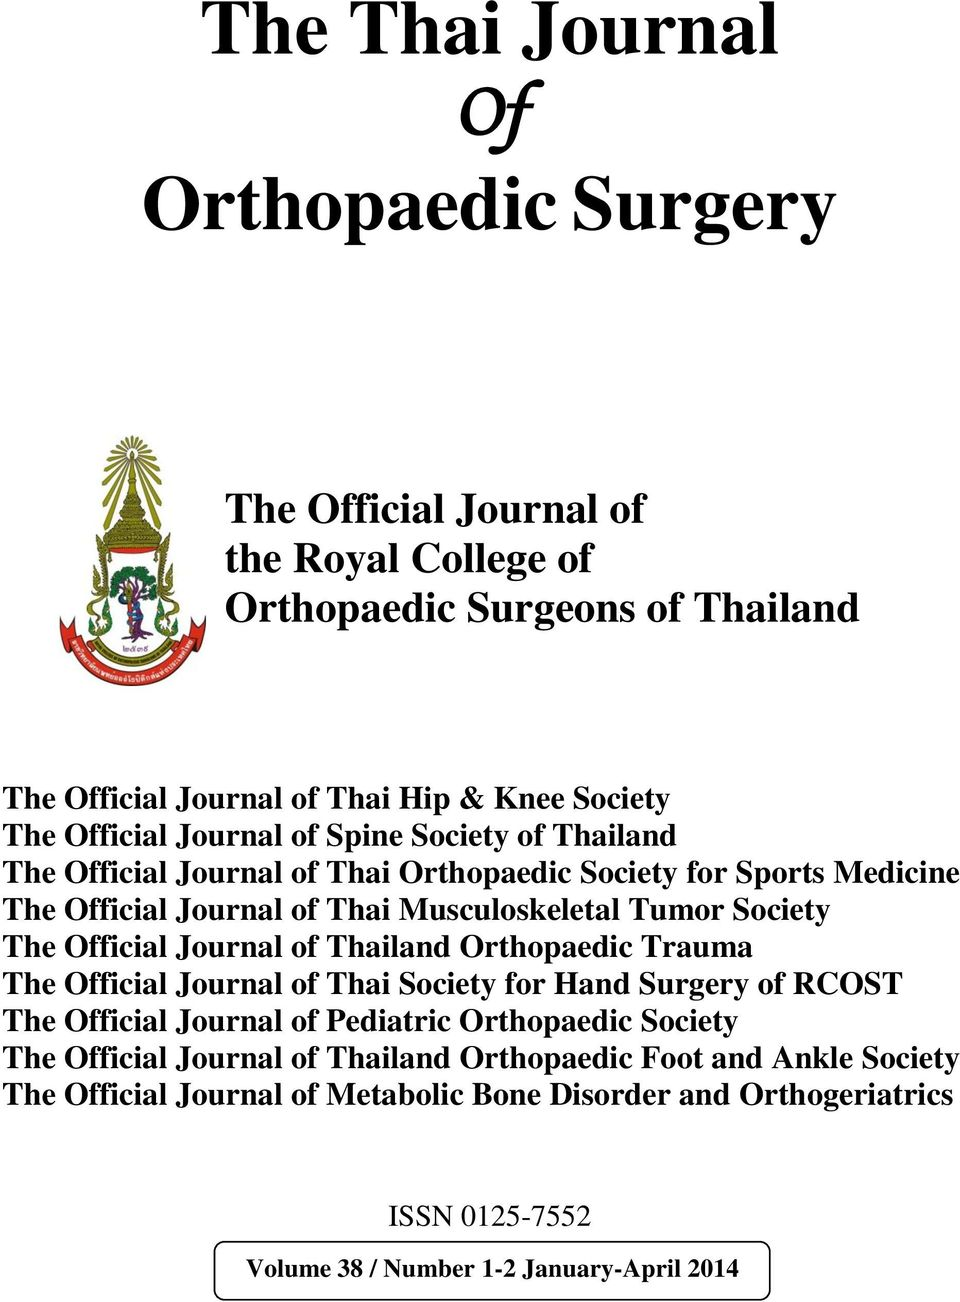 The Official Journal of Thailand Orthopaedic Trauma The Official Journal of Thai Society for Hand Surgery of RCOST The Official Journal of Pediatric Orthopaedic Society The